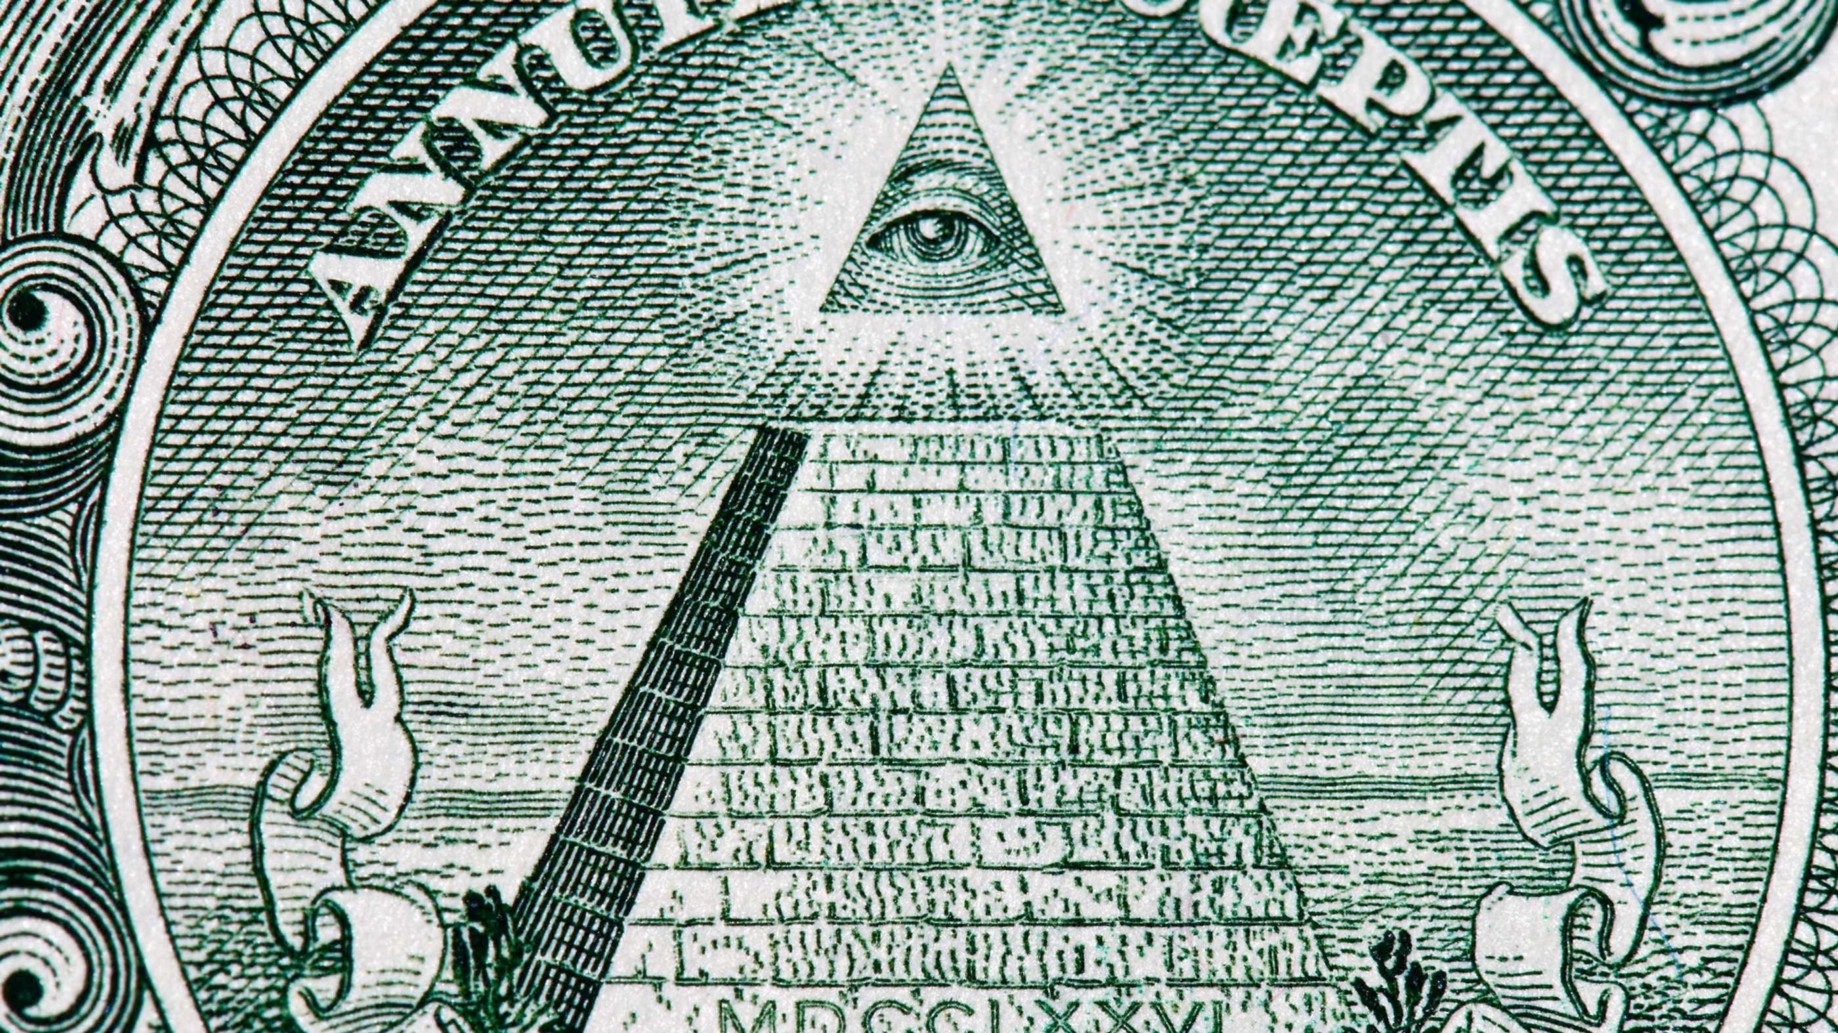 How I Learned to Stop Worrying and Love the Illuminati